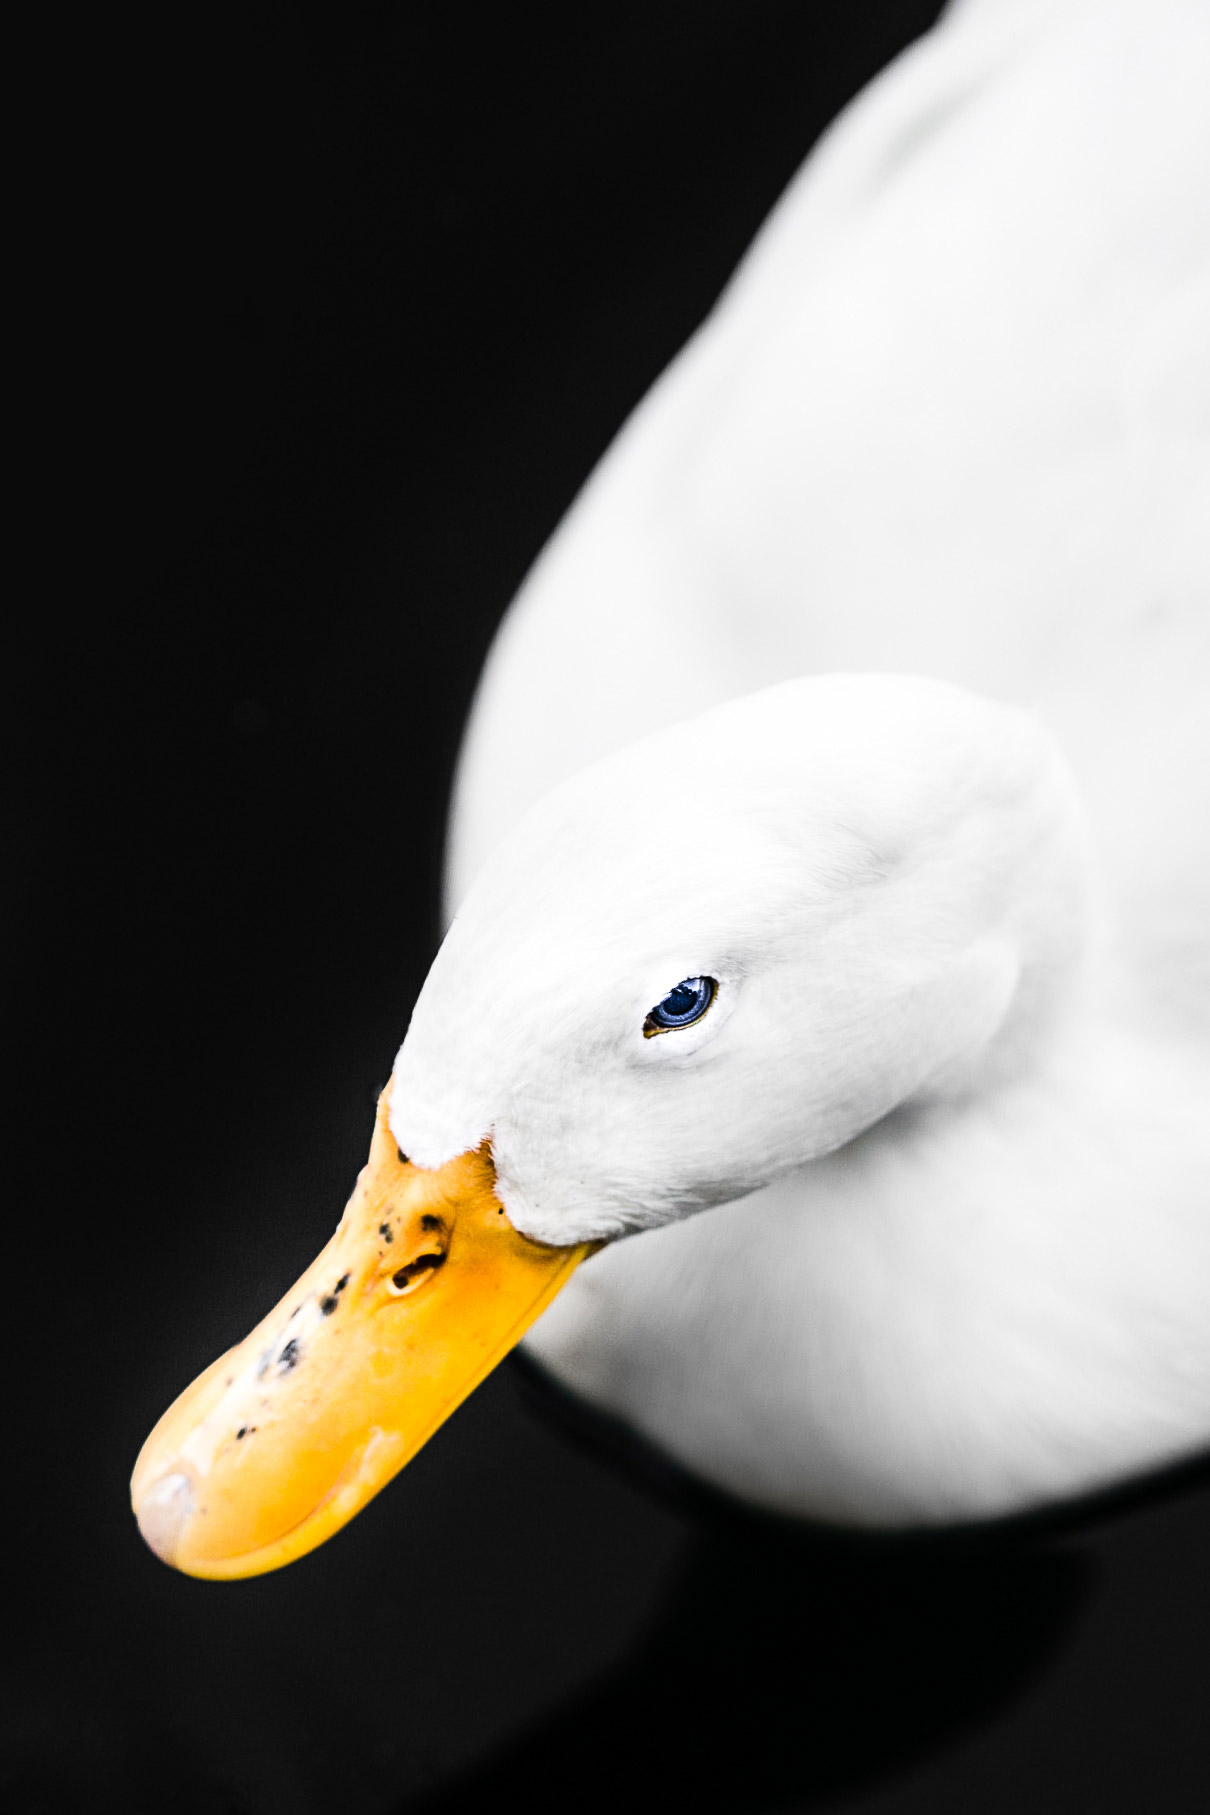 alexa-wright-color-photography-duck.jpg